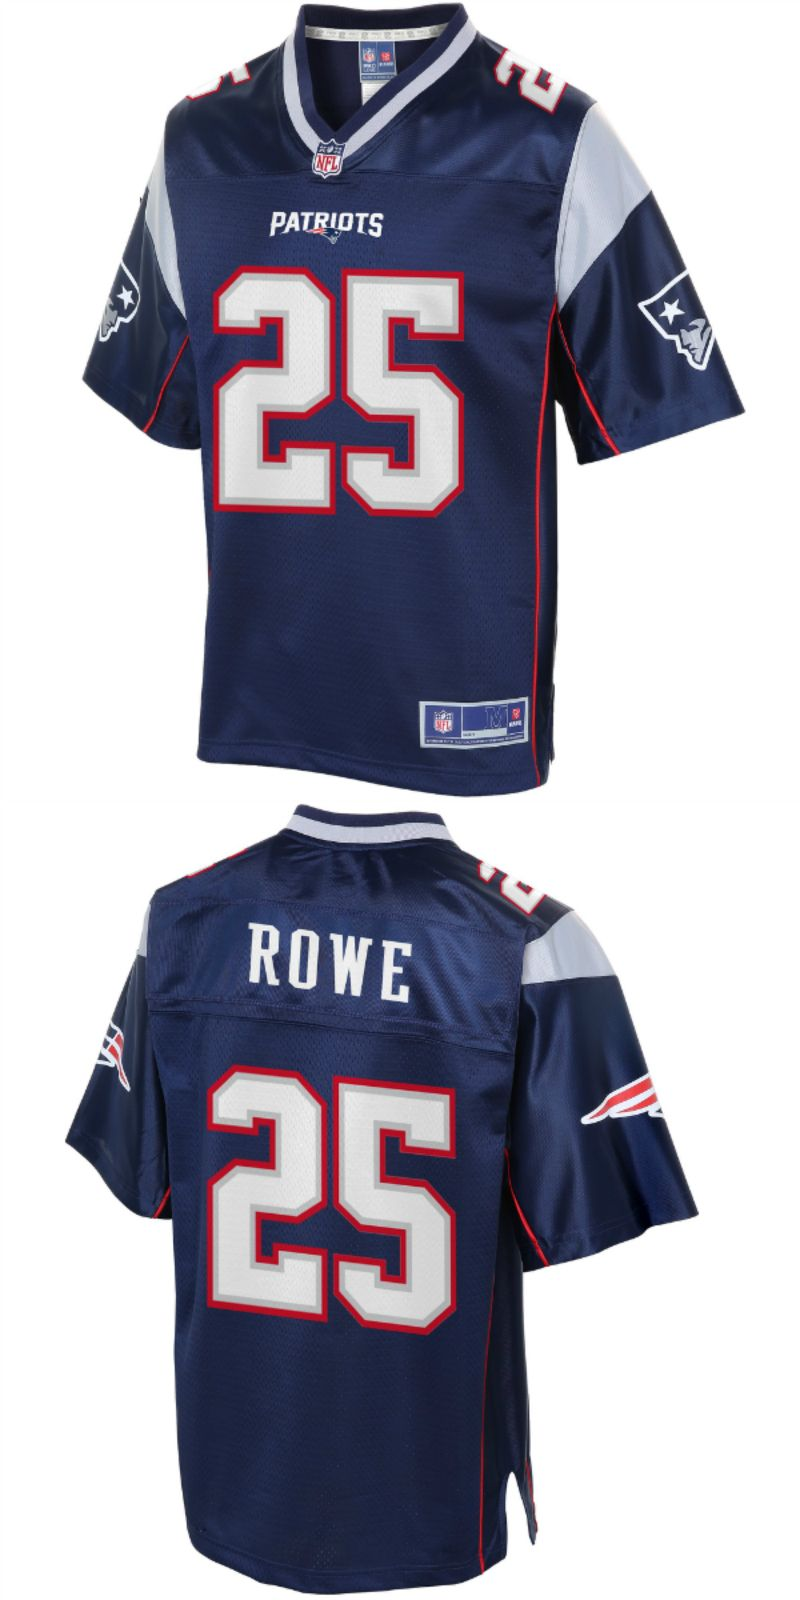 get cheap 5fdcb f5c68 UP TO 70% OFF. Eric Rowe New England Patriots NFL Pro Line ...